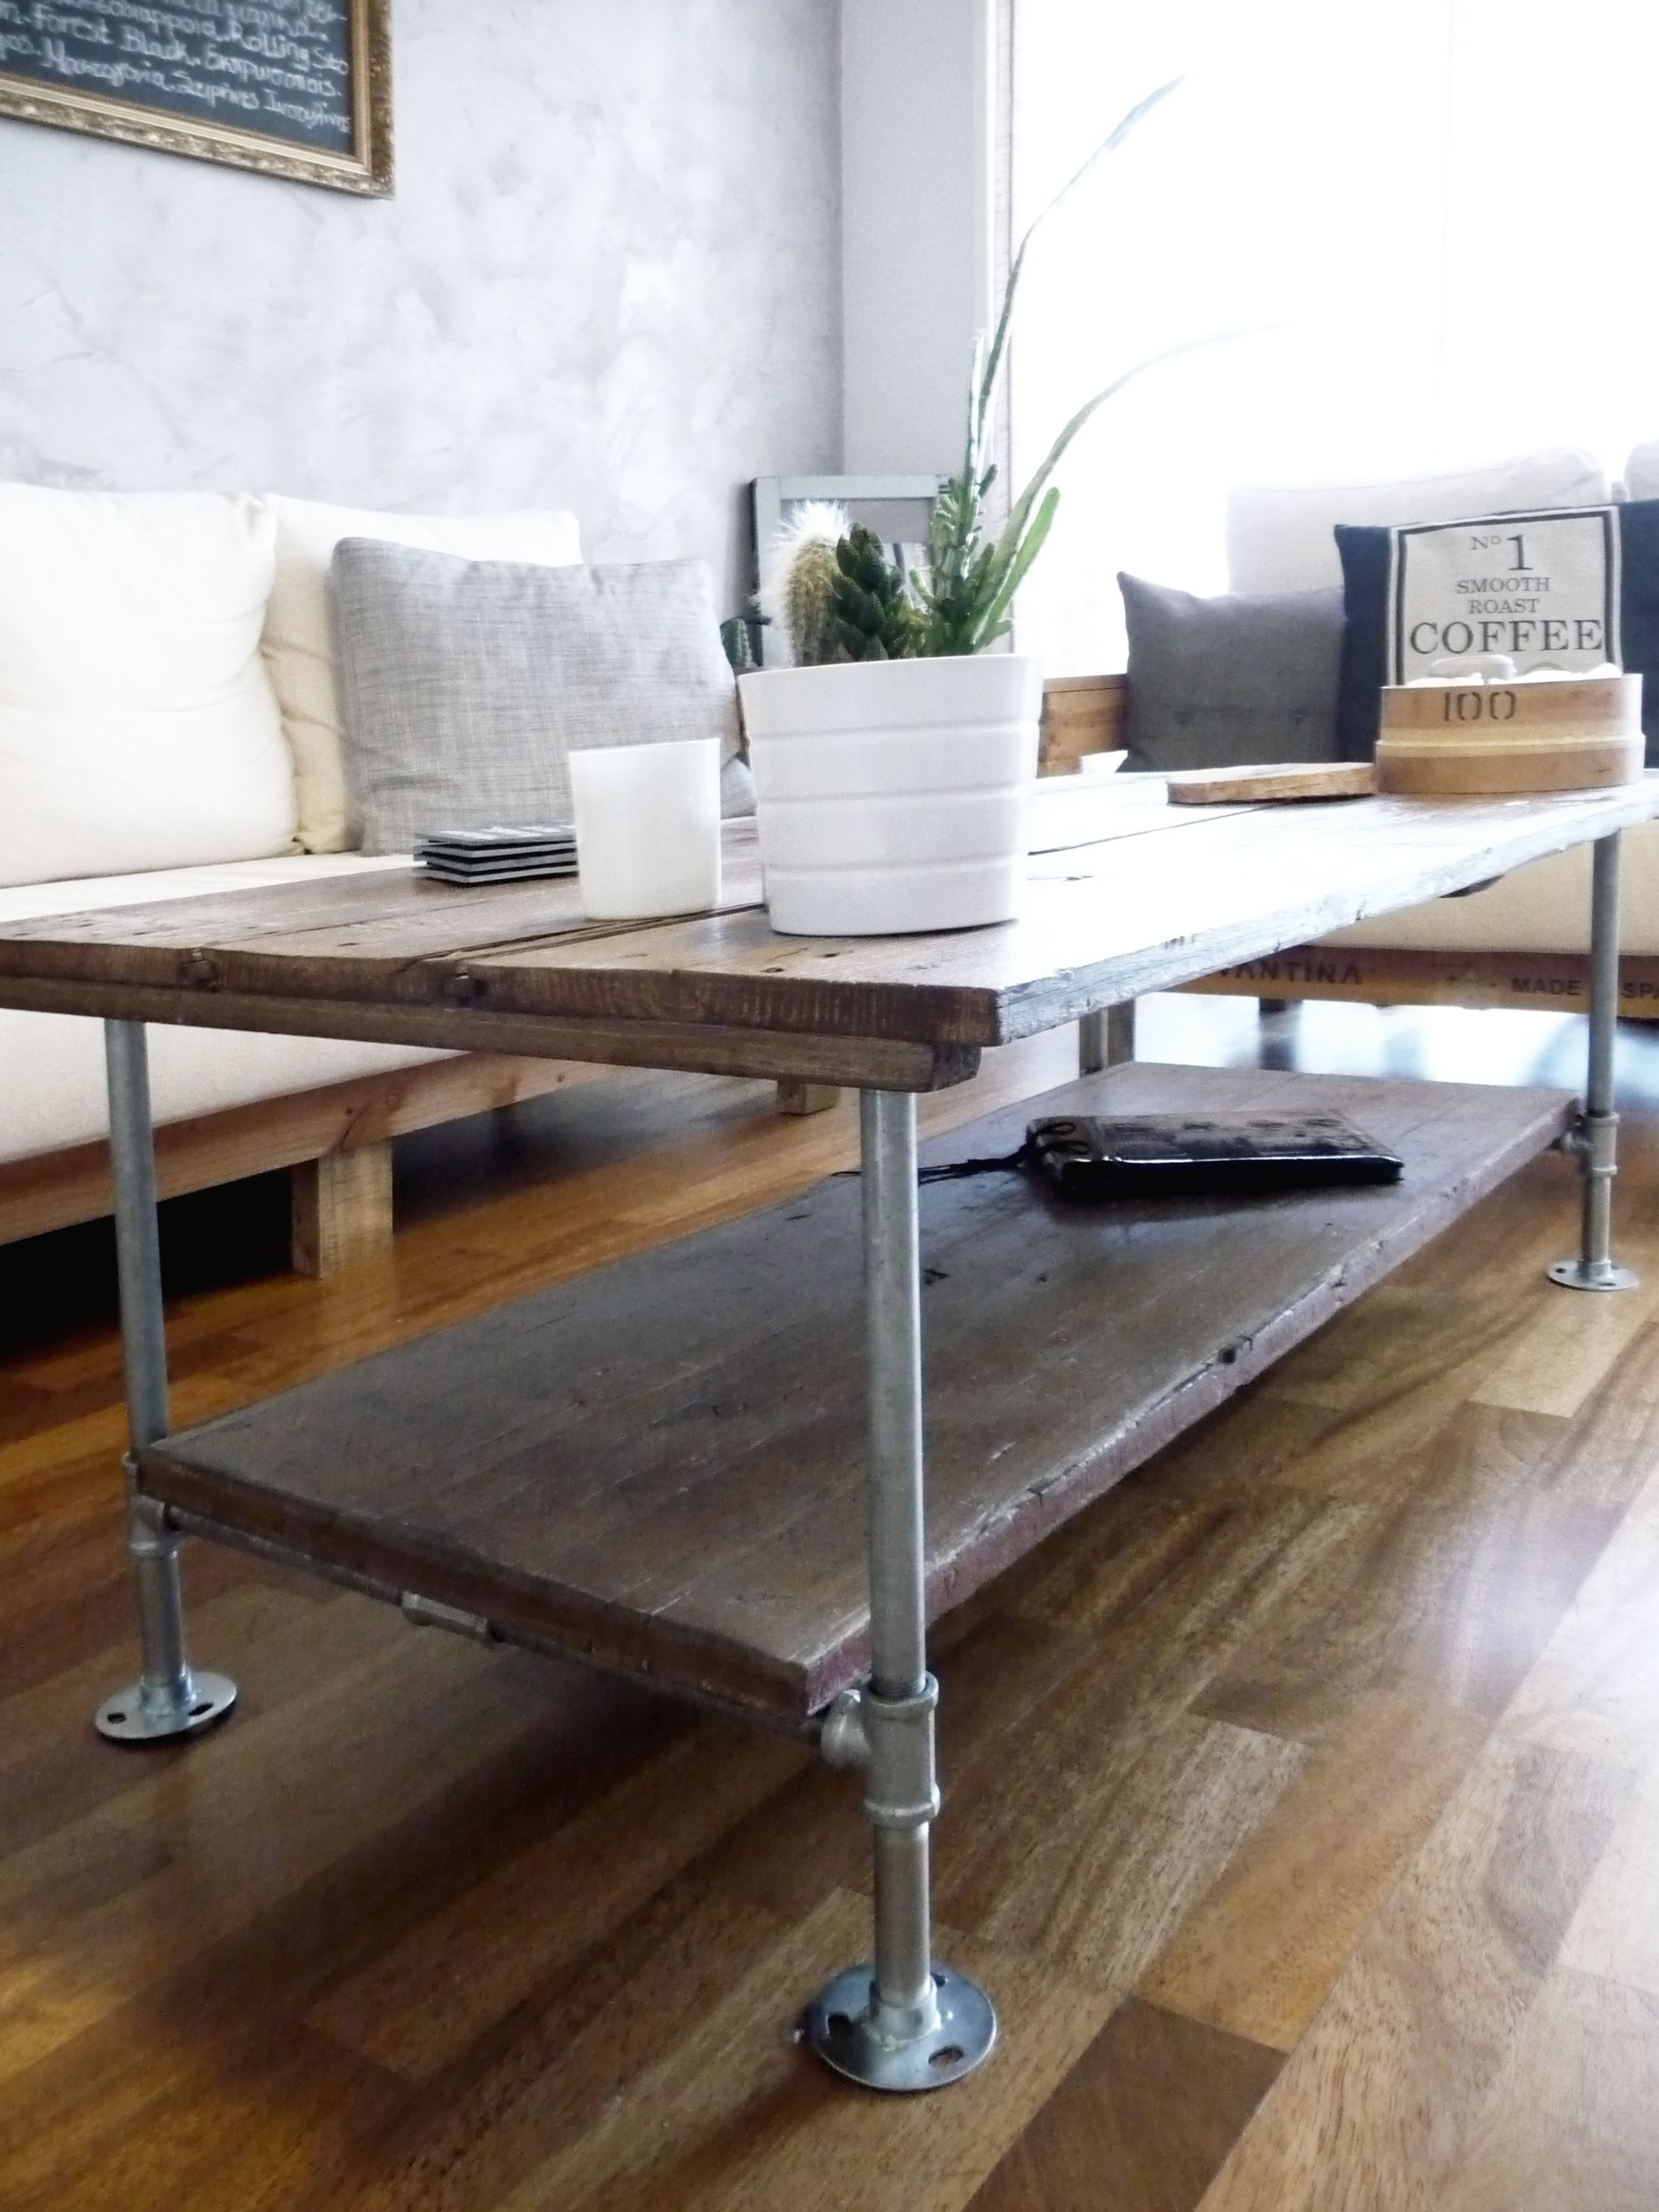 Diy Coffee table with wood and galvanized steel pipes rustic